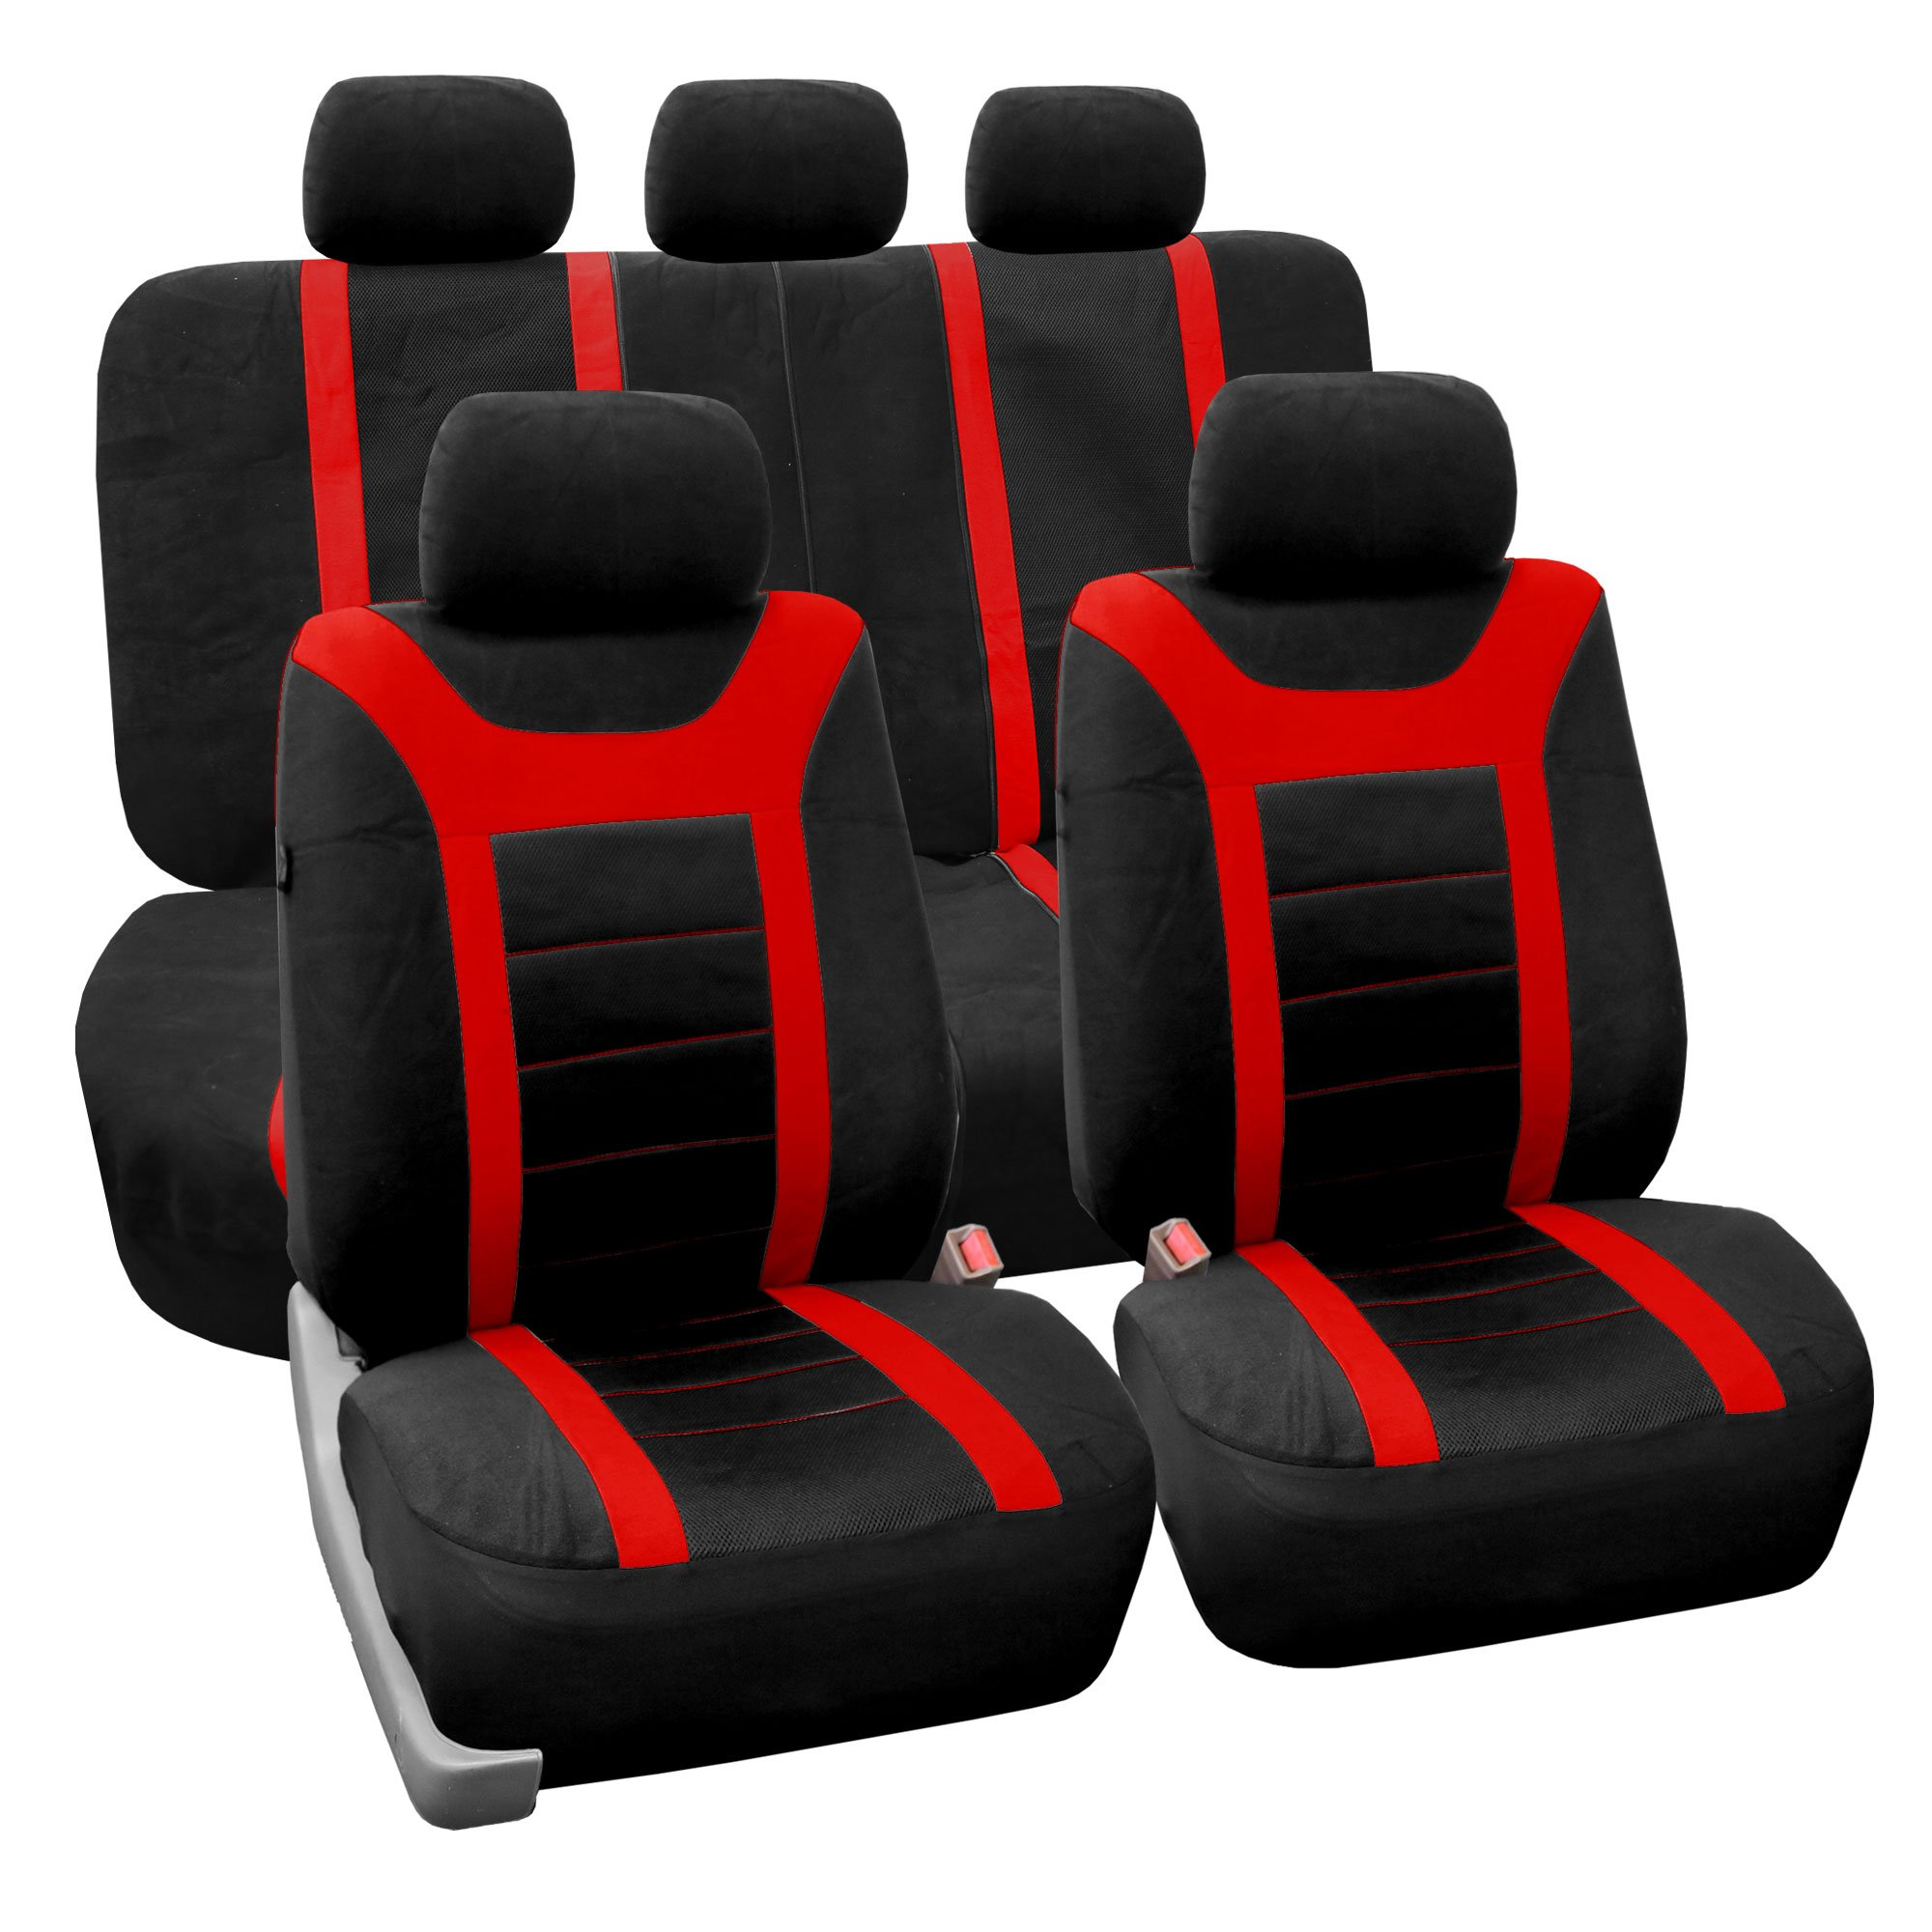 FH Group FB070RED102 Red Front Airbag Ready Sport Bucket Seat Cover Set of 2